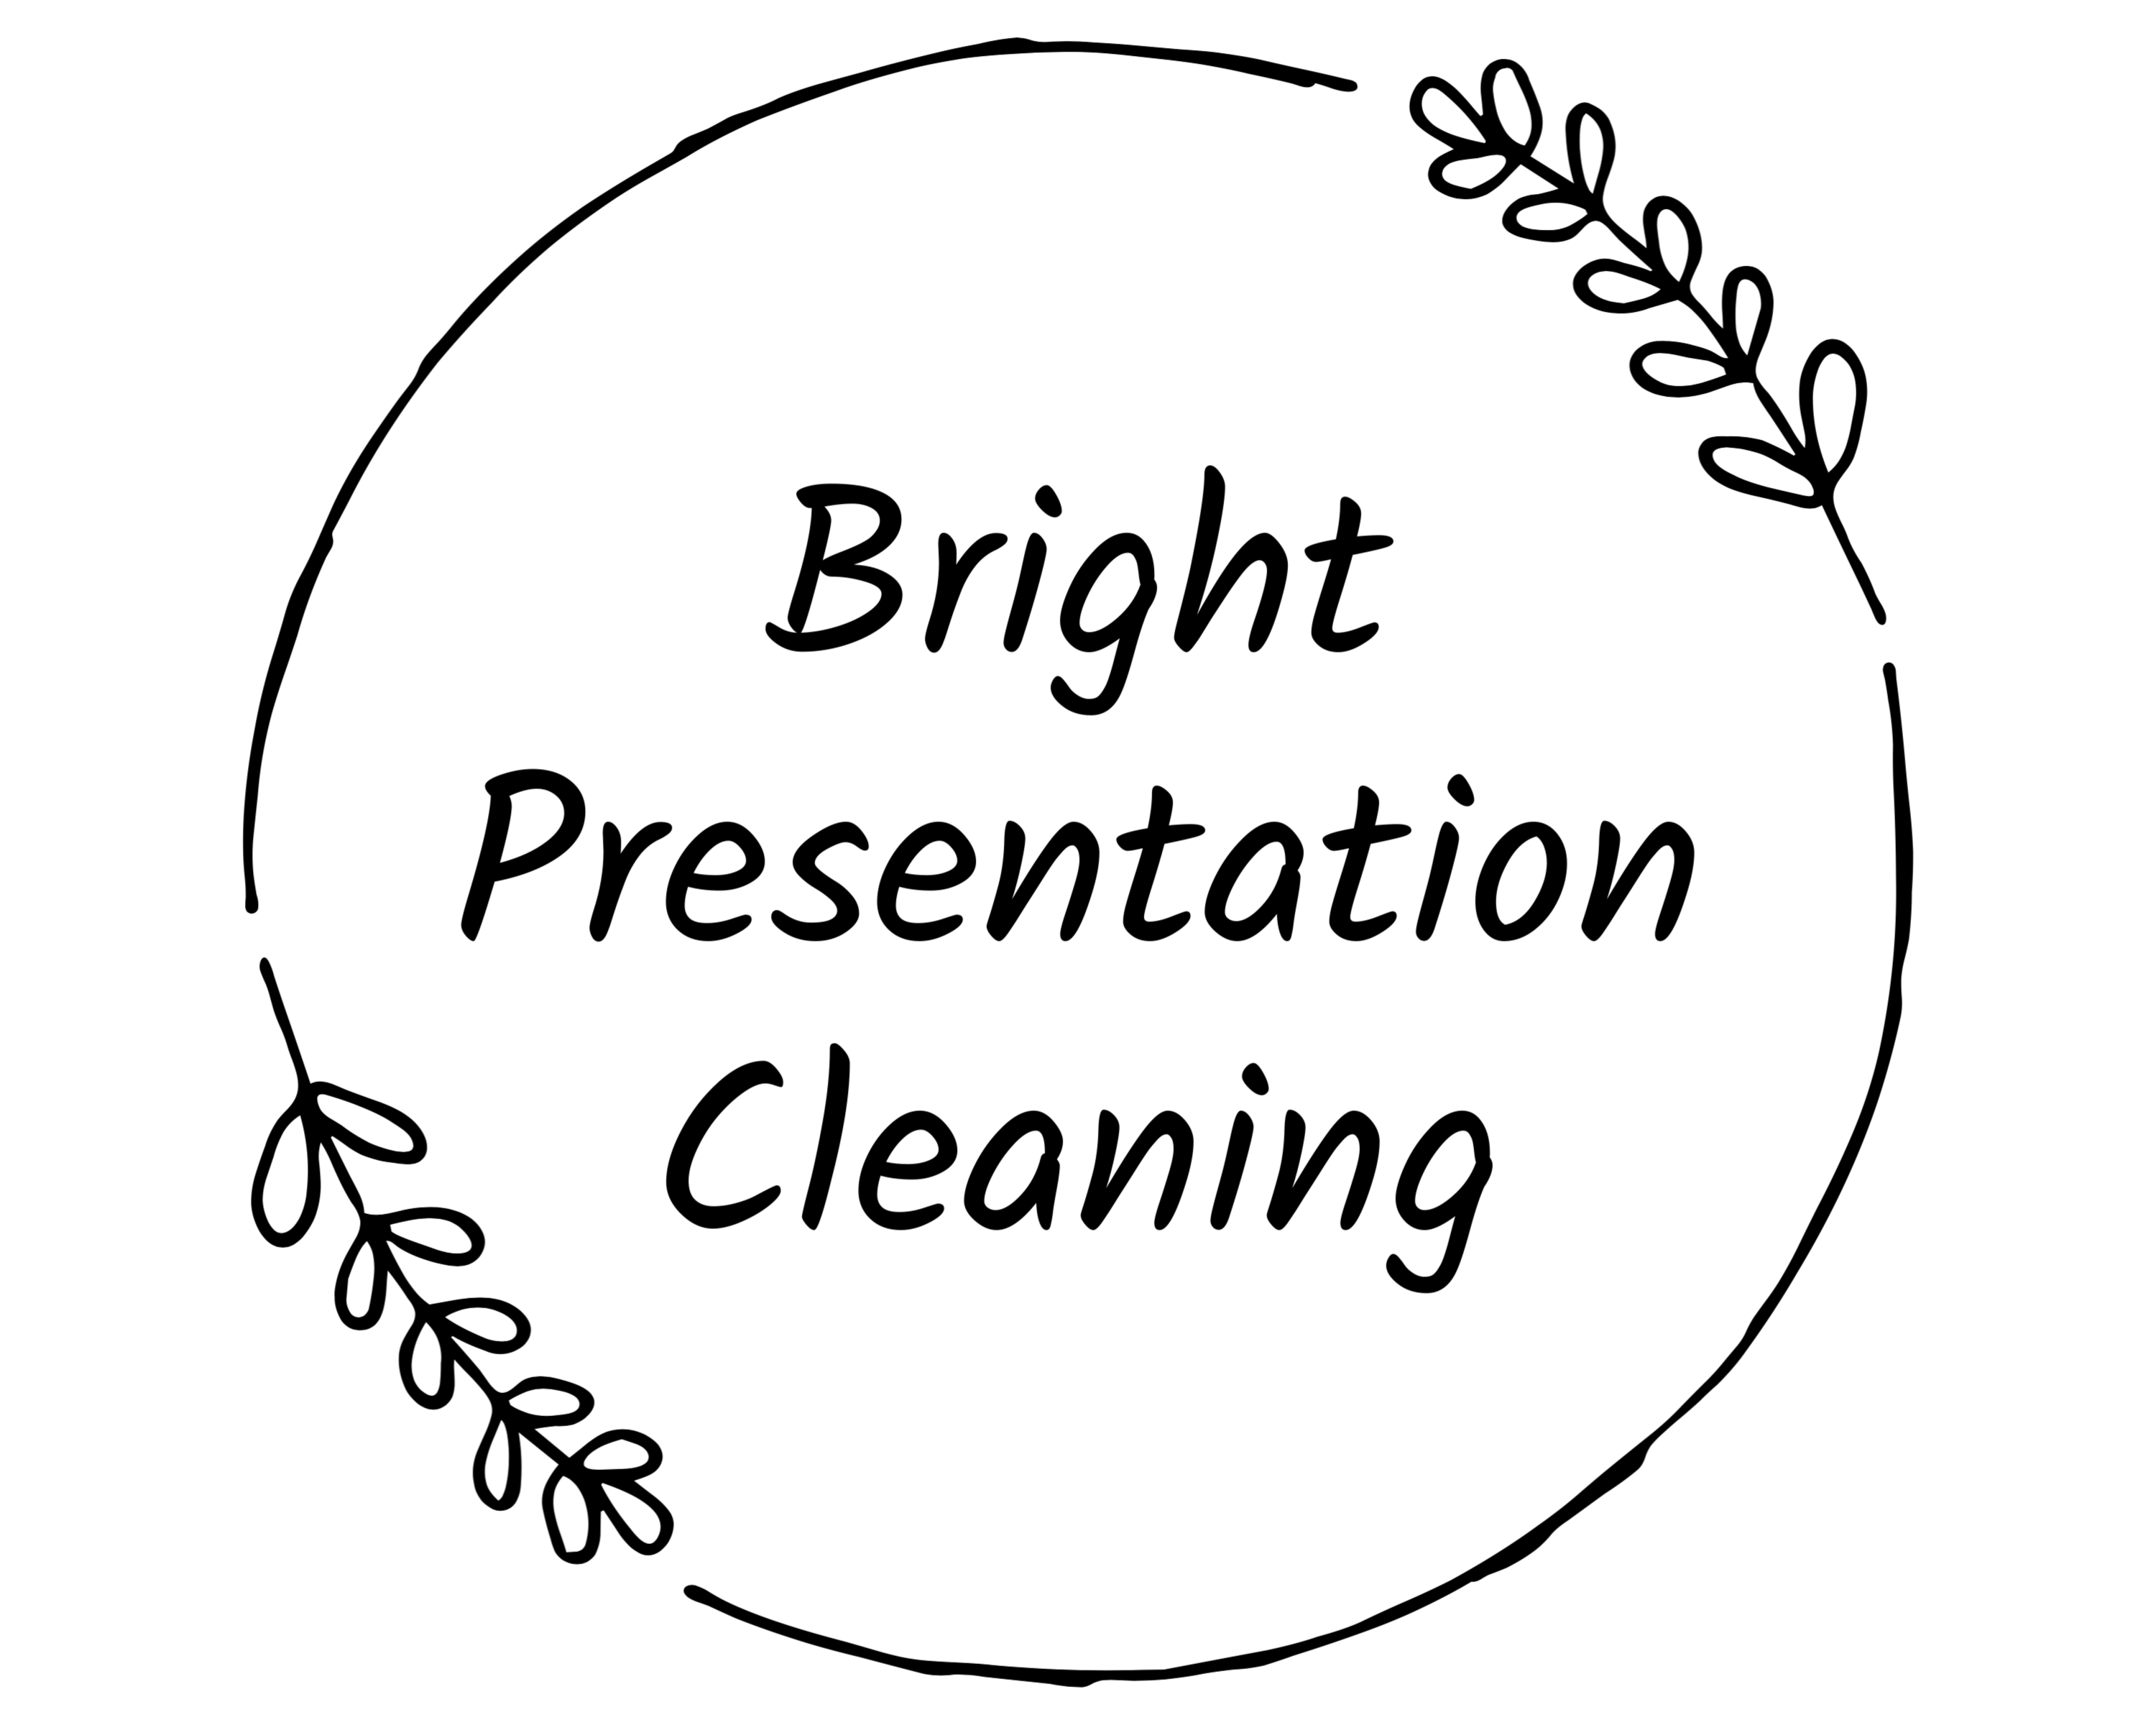 Bright Presentation Cleaning